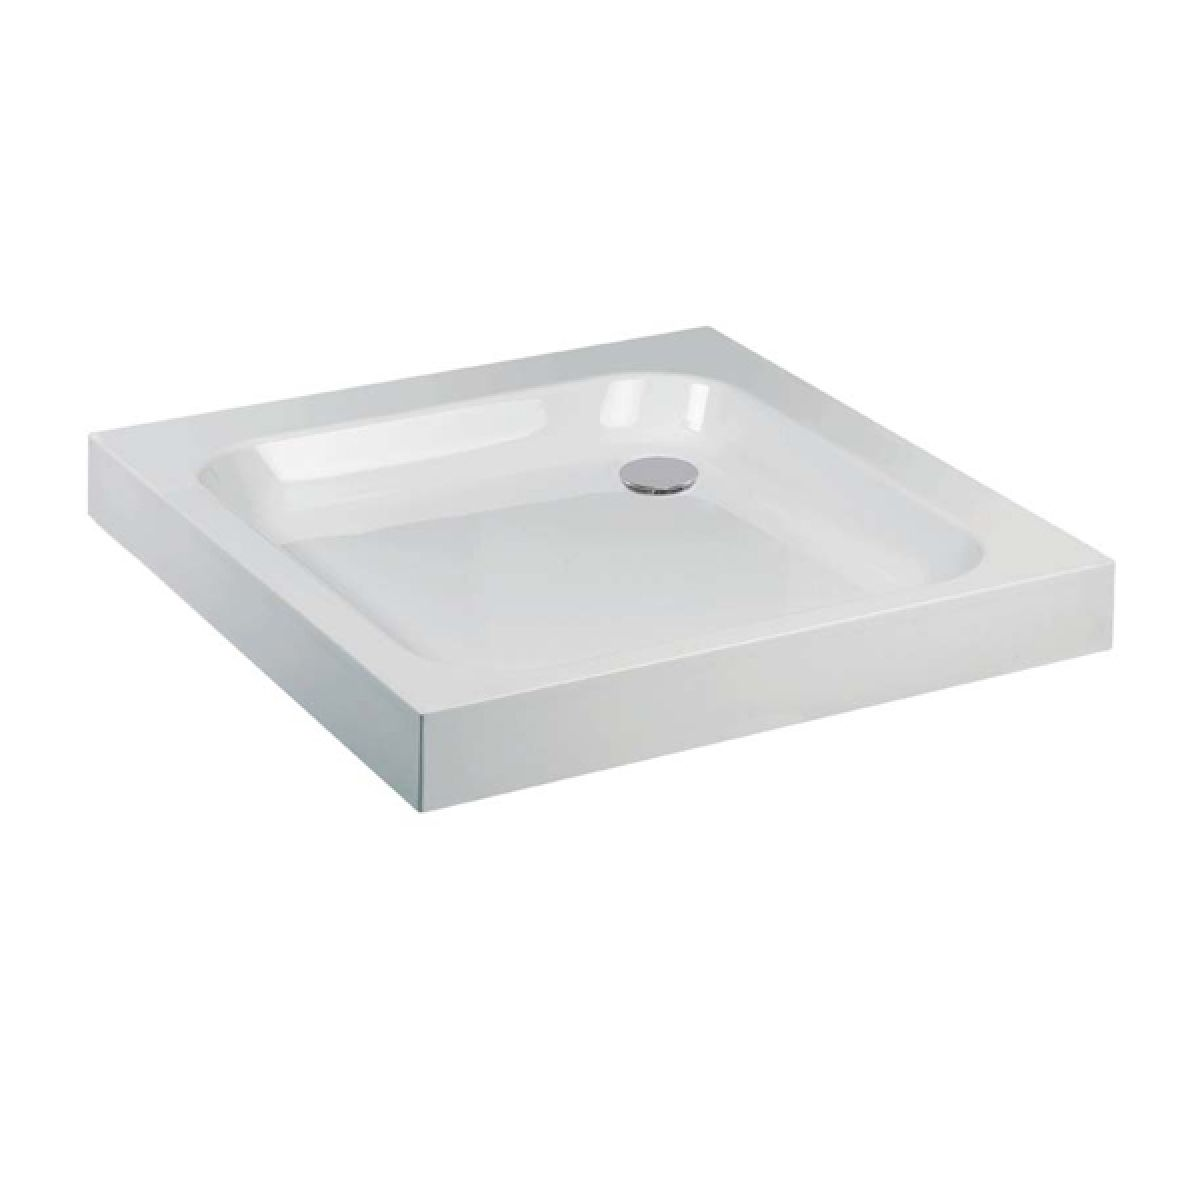 Frontline Standard Square Shower Tray 1000 x 1000mm